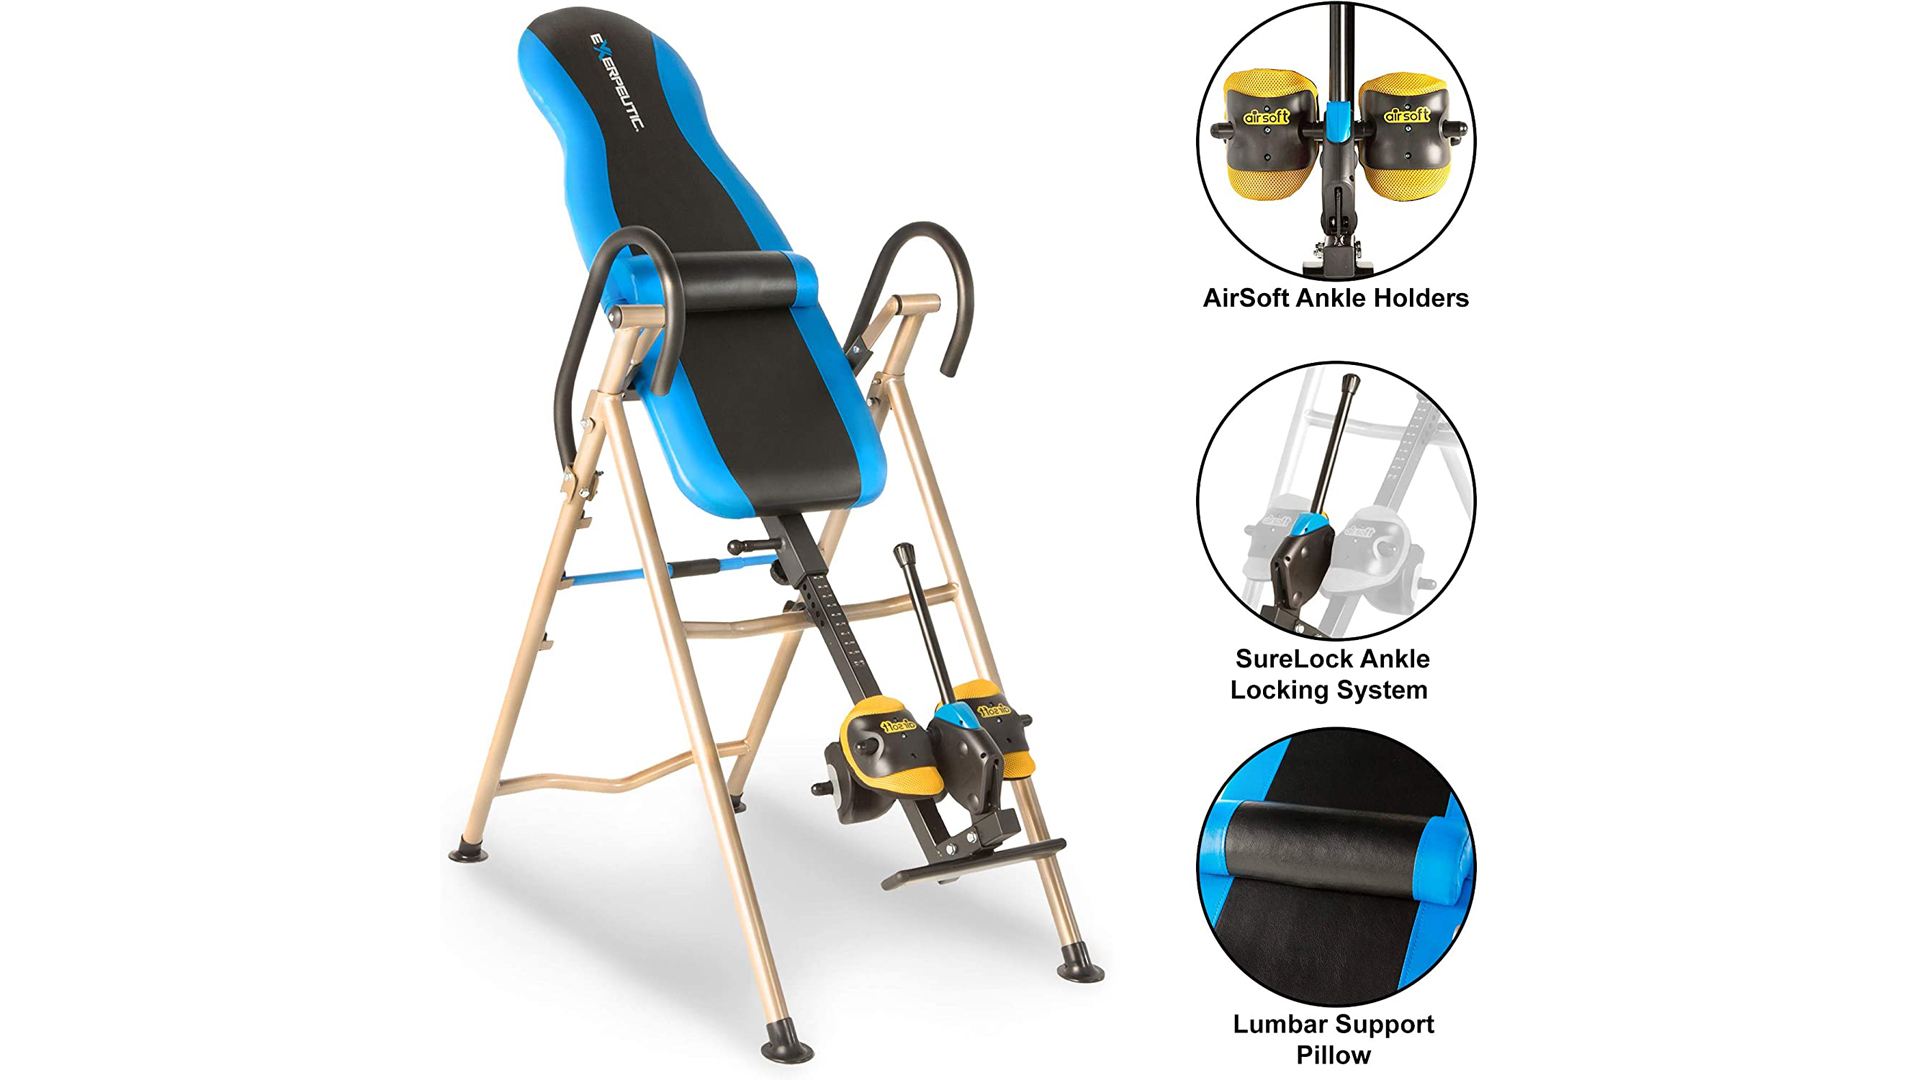 Exerpeutic Inversion Table with SURELOCK and AIRSOFT